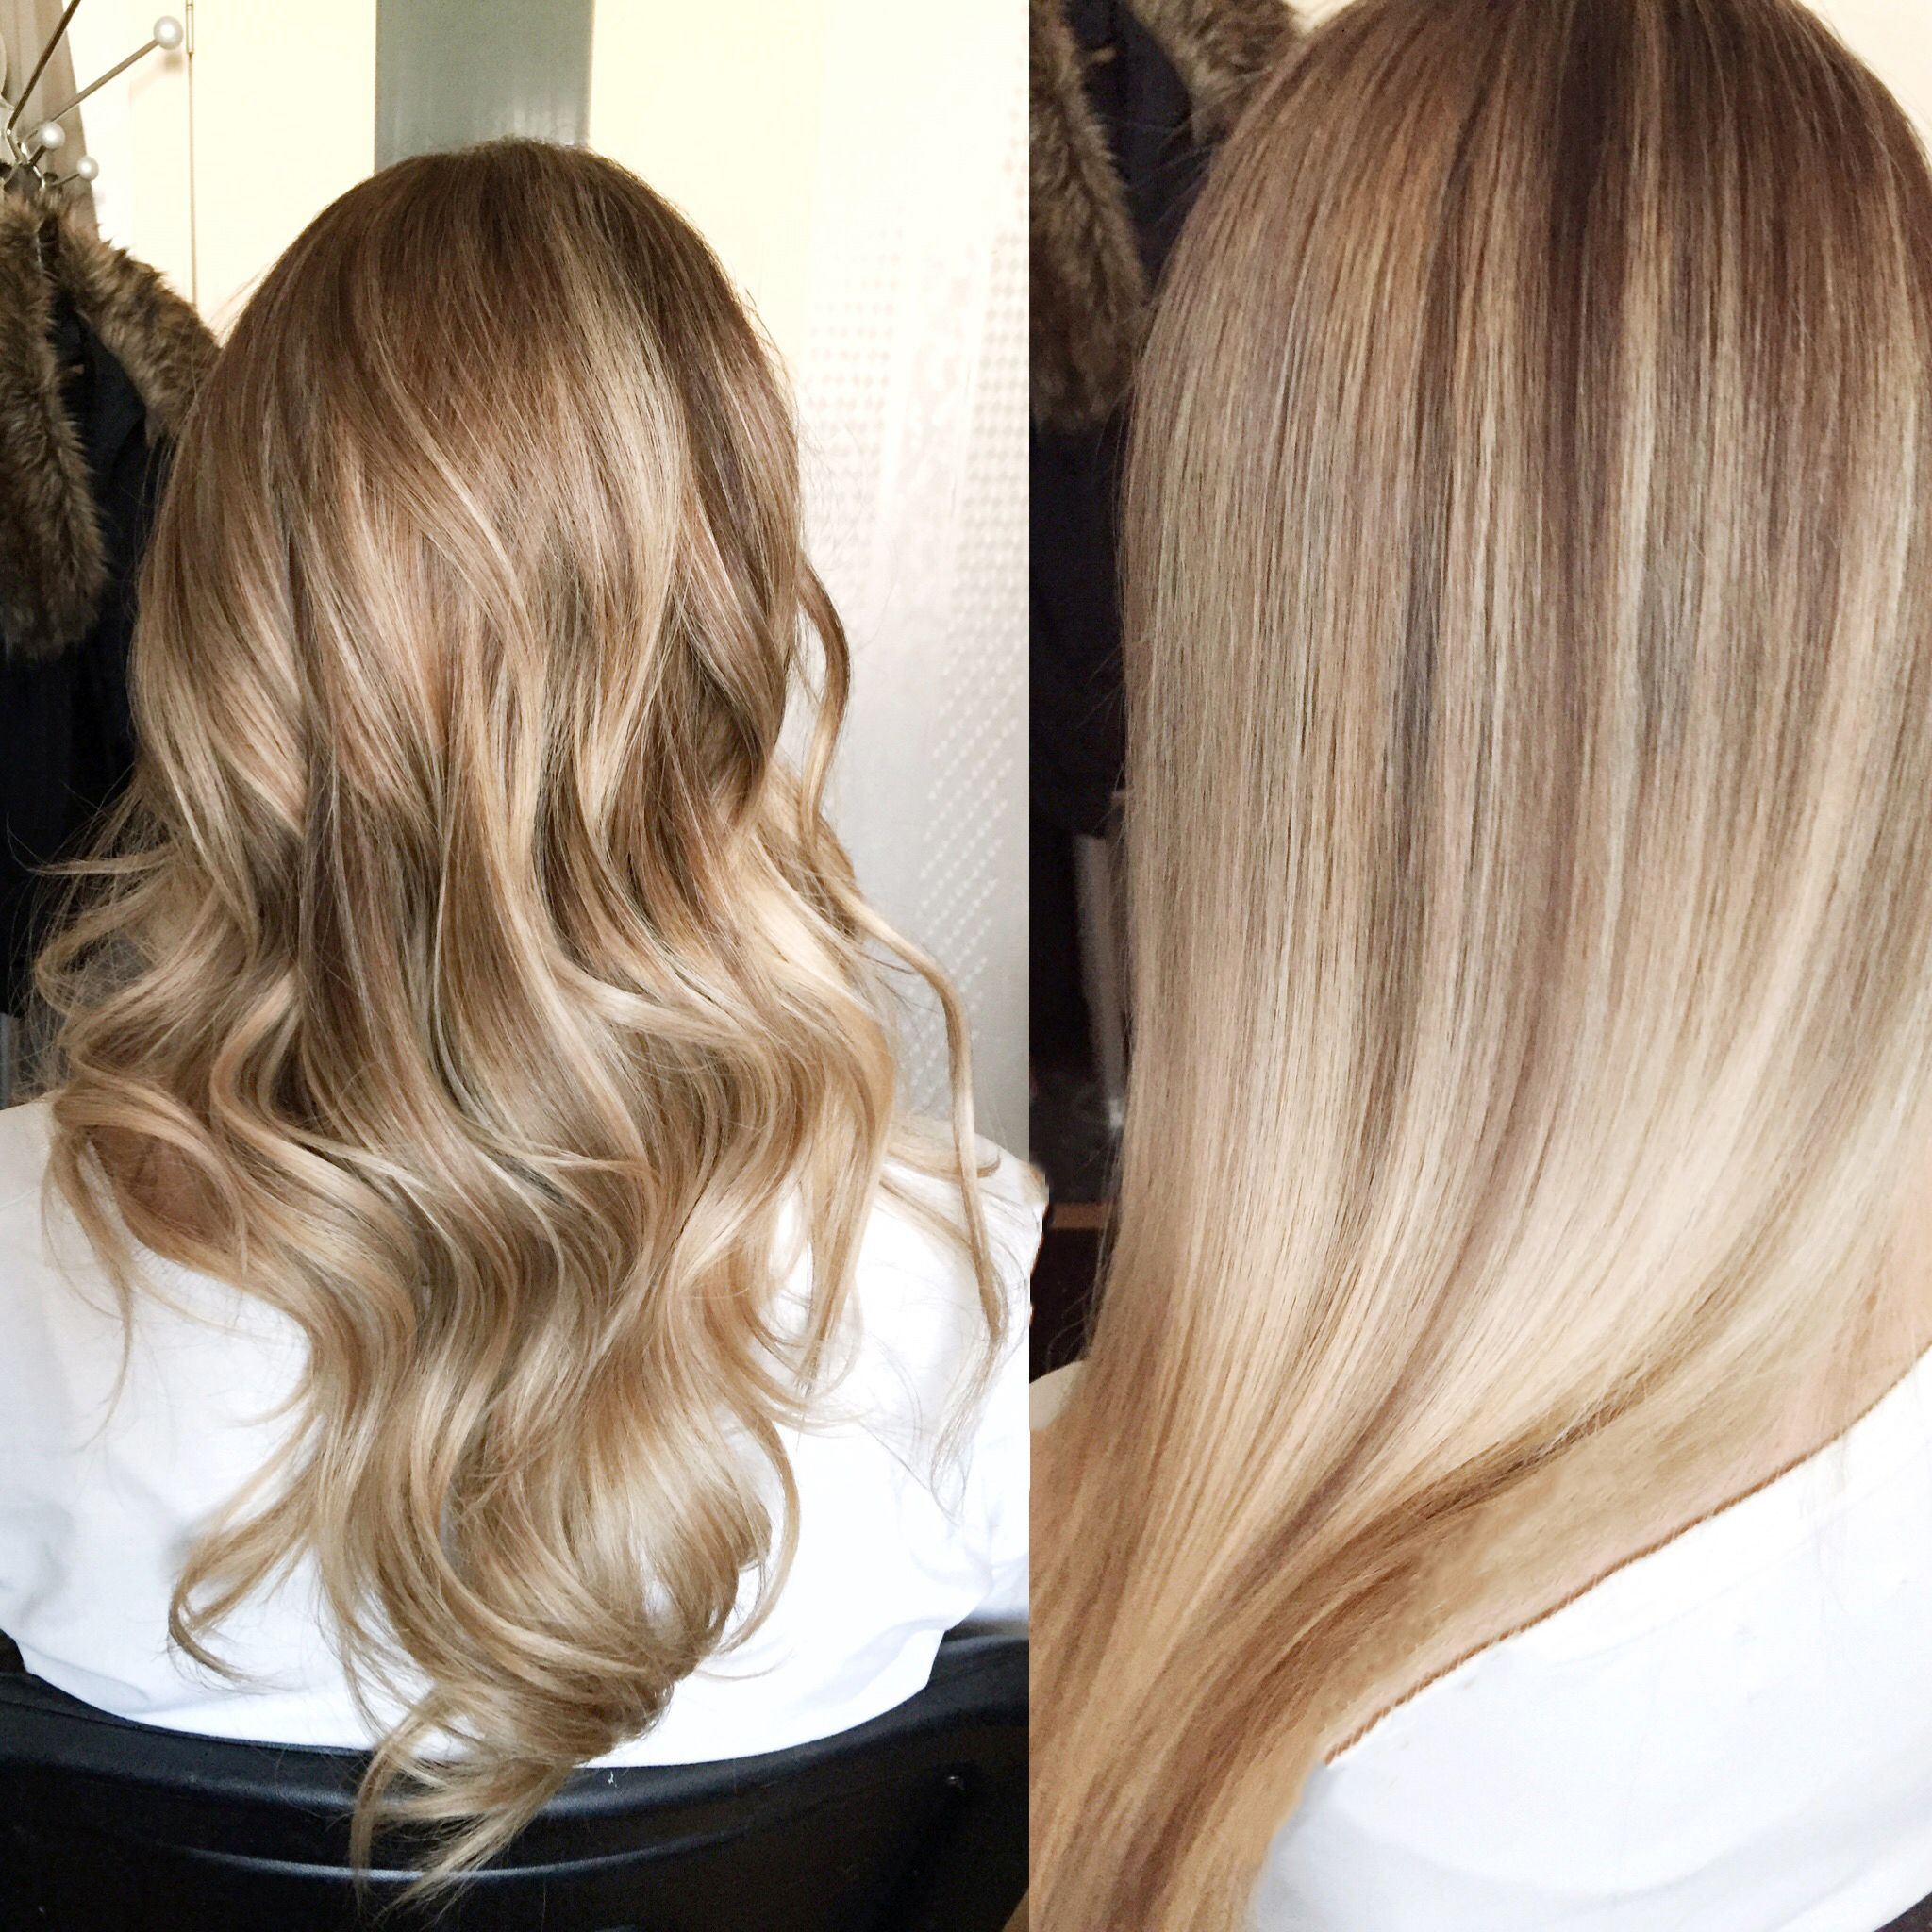 Home Hair Dye 101 The Best Way To Dye Hair At Home Dyed Blonde